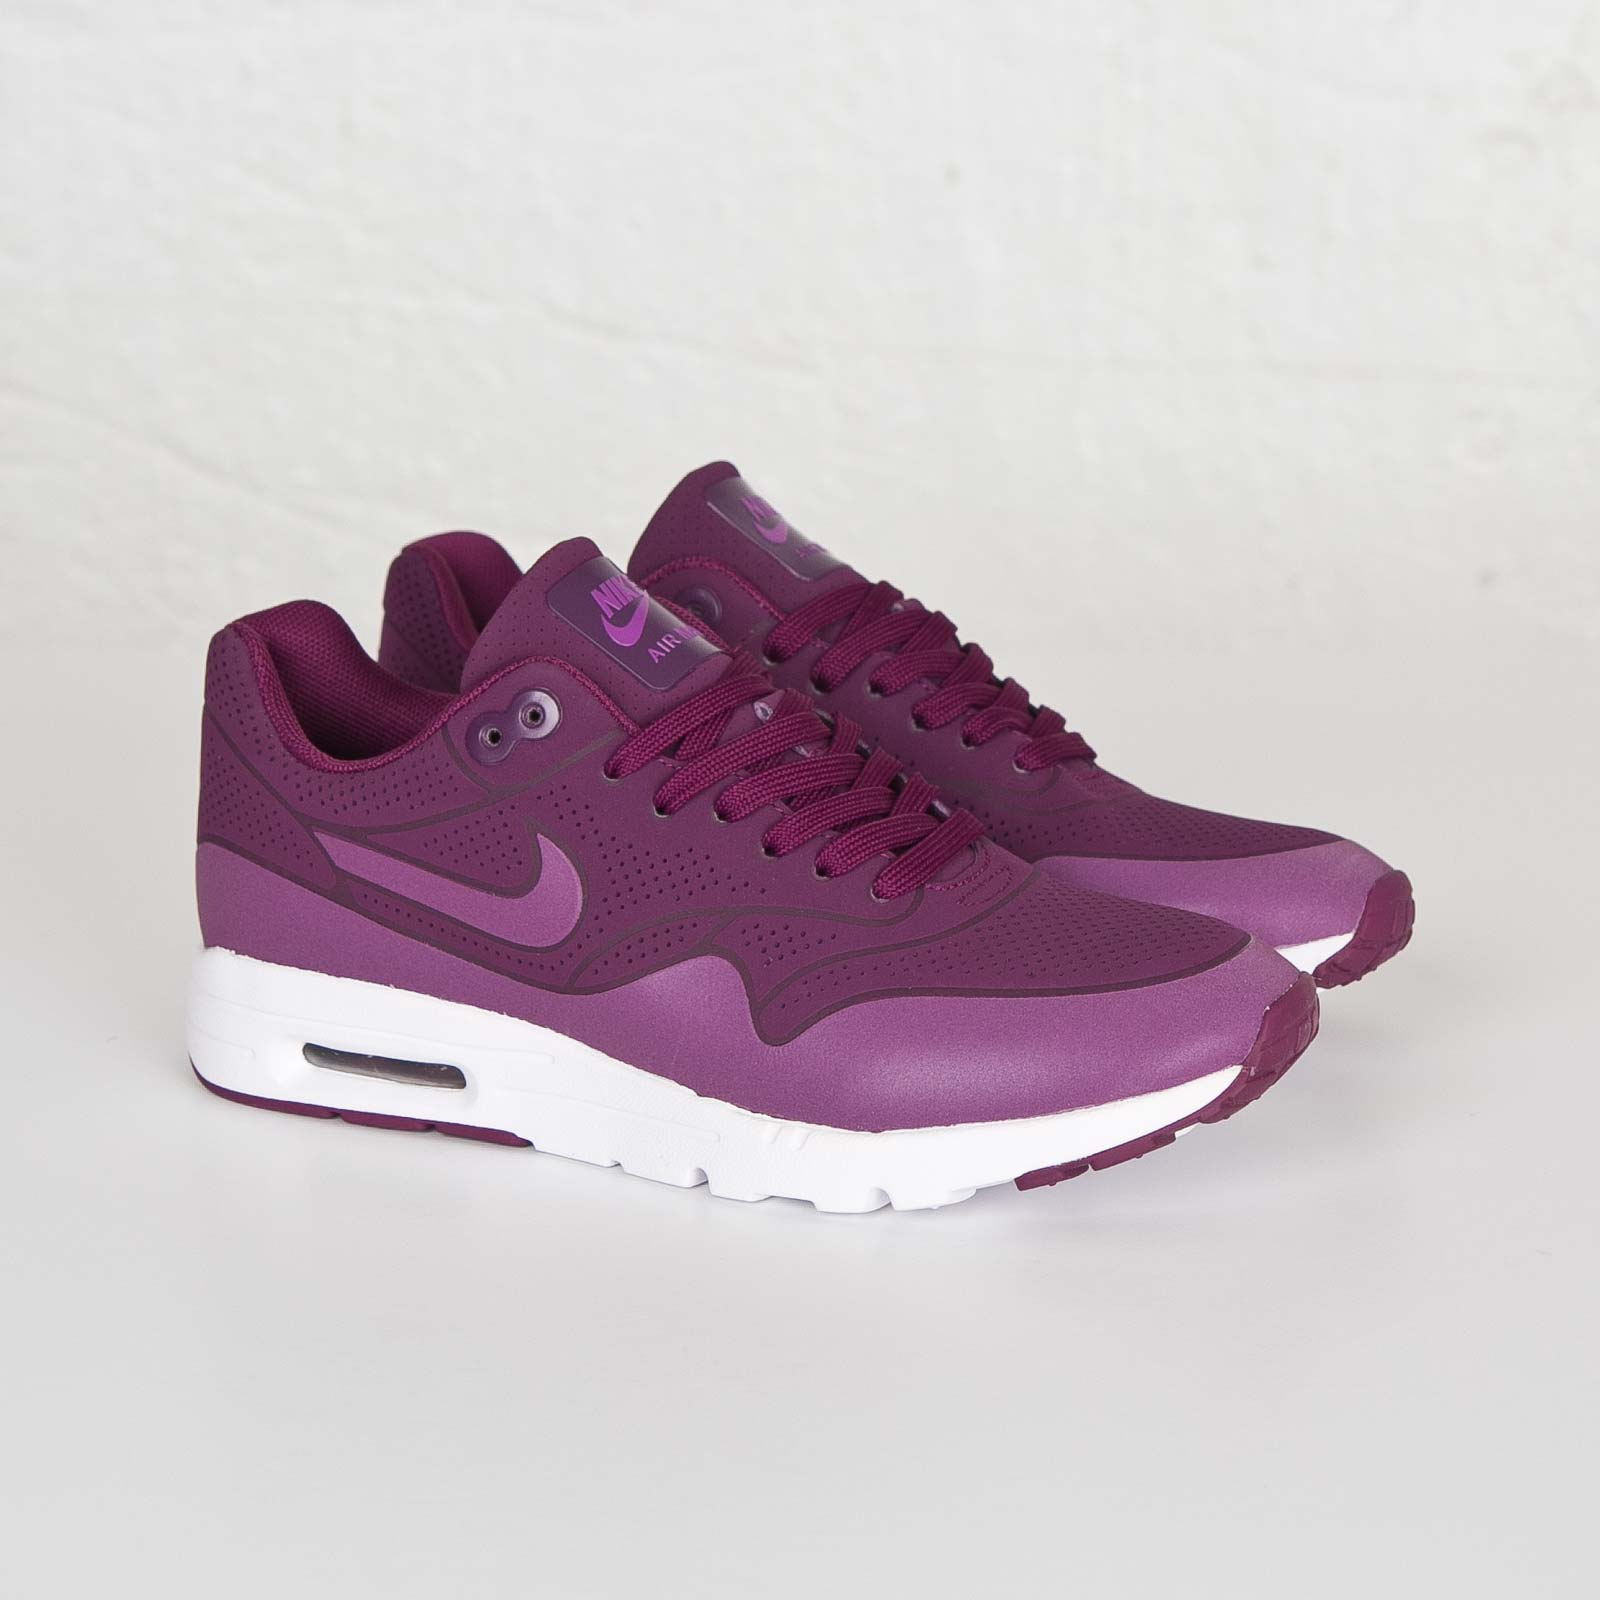 Nike Wmns Air Max 1 Ultra Moire - 704995-500 - SNS   sneakers ...